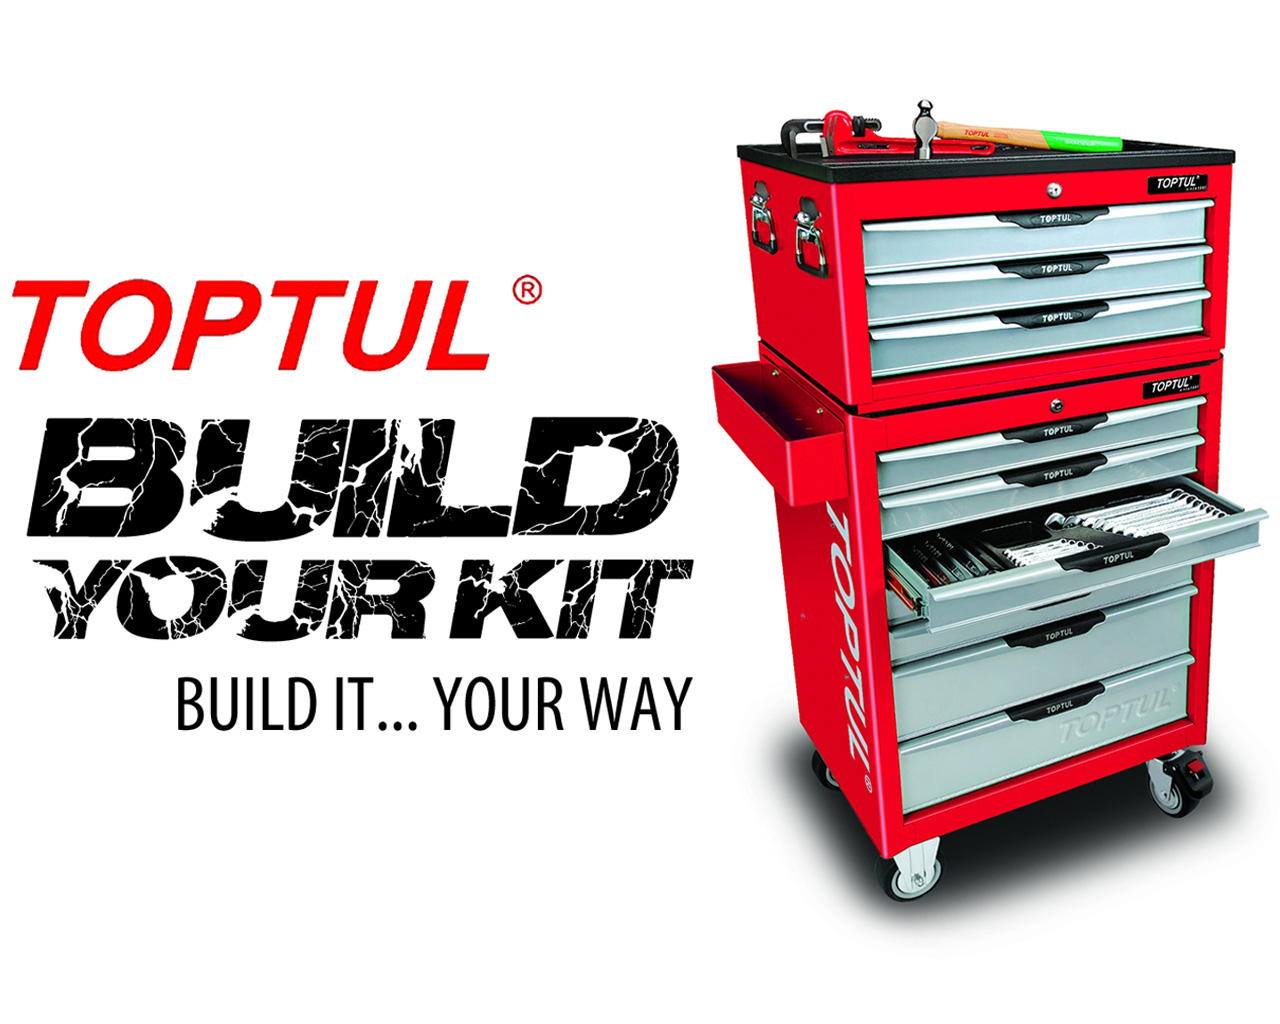 toptul-build-your-kit-2.jpg